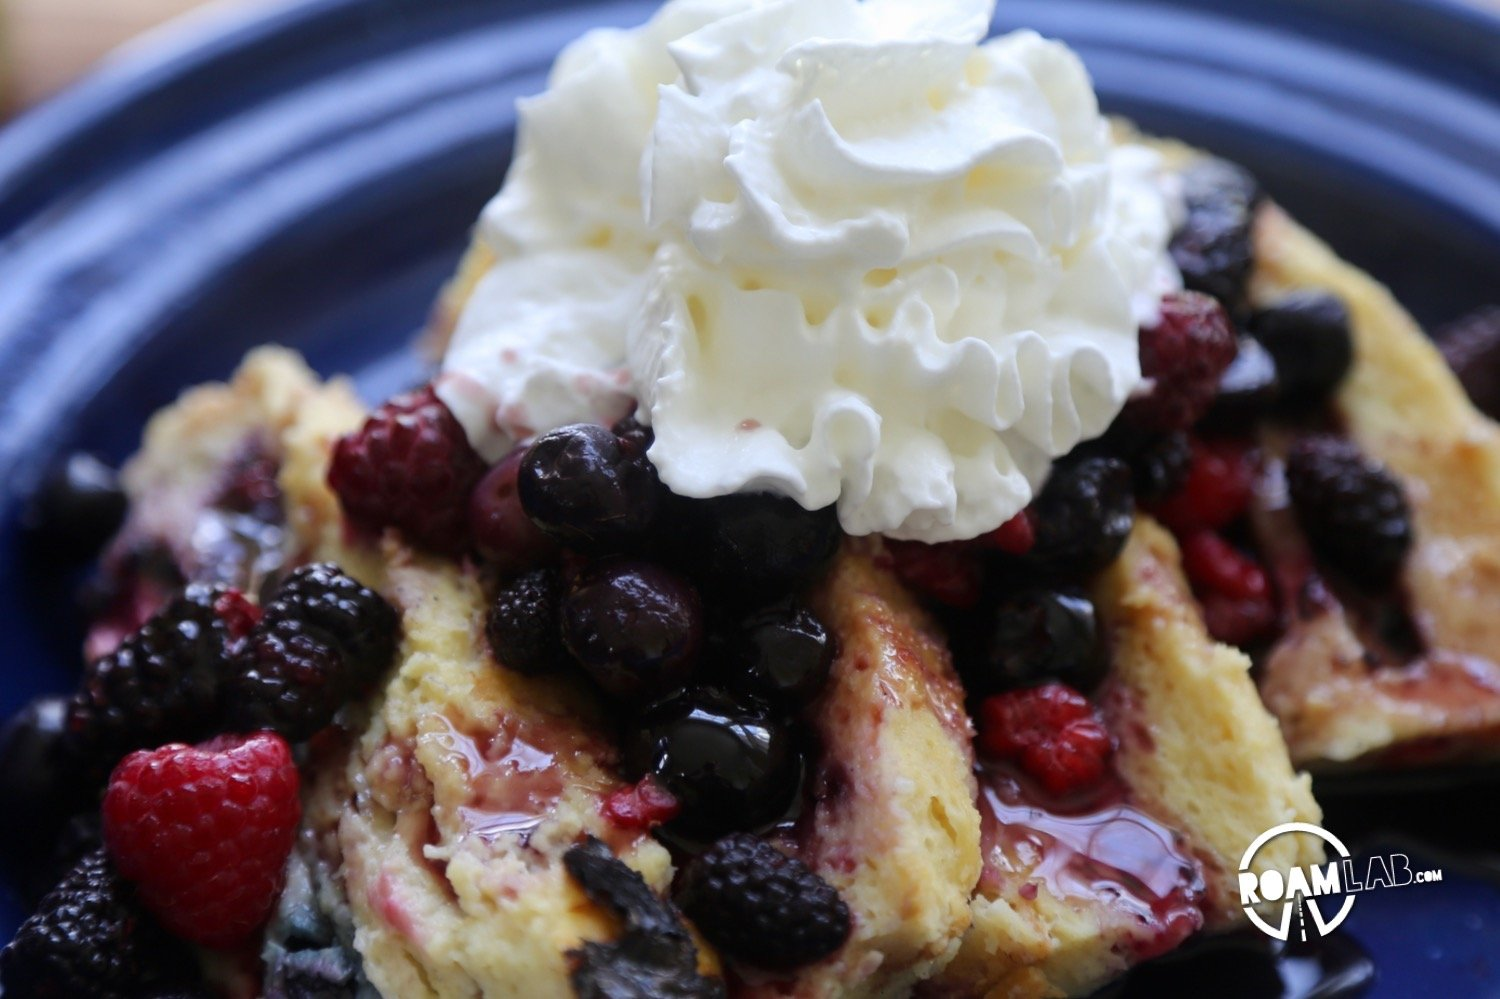 For mornings when we have time and a sweet tooth, we make some delicious Camper's Berry French Toast Loaf